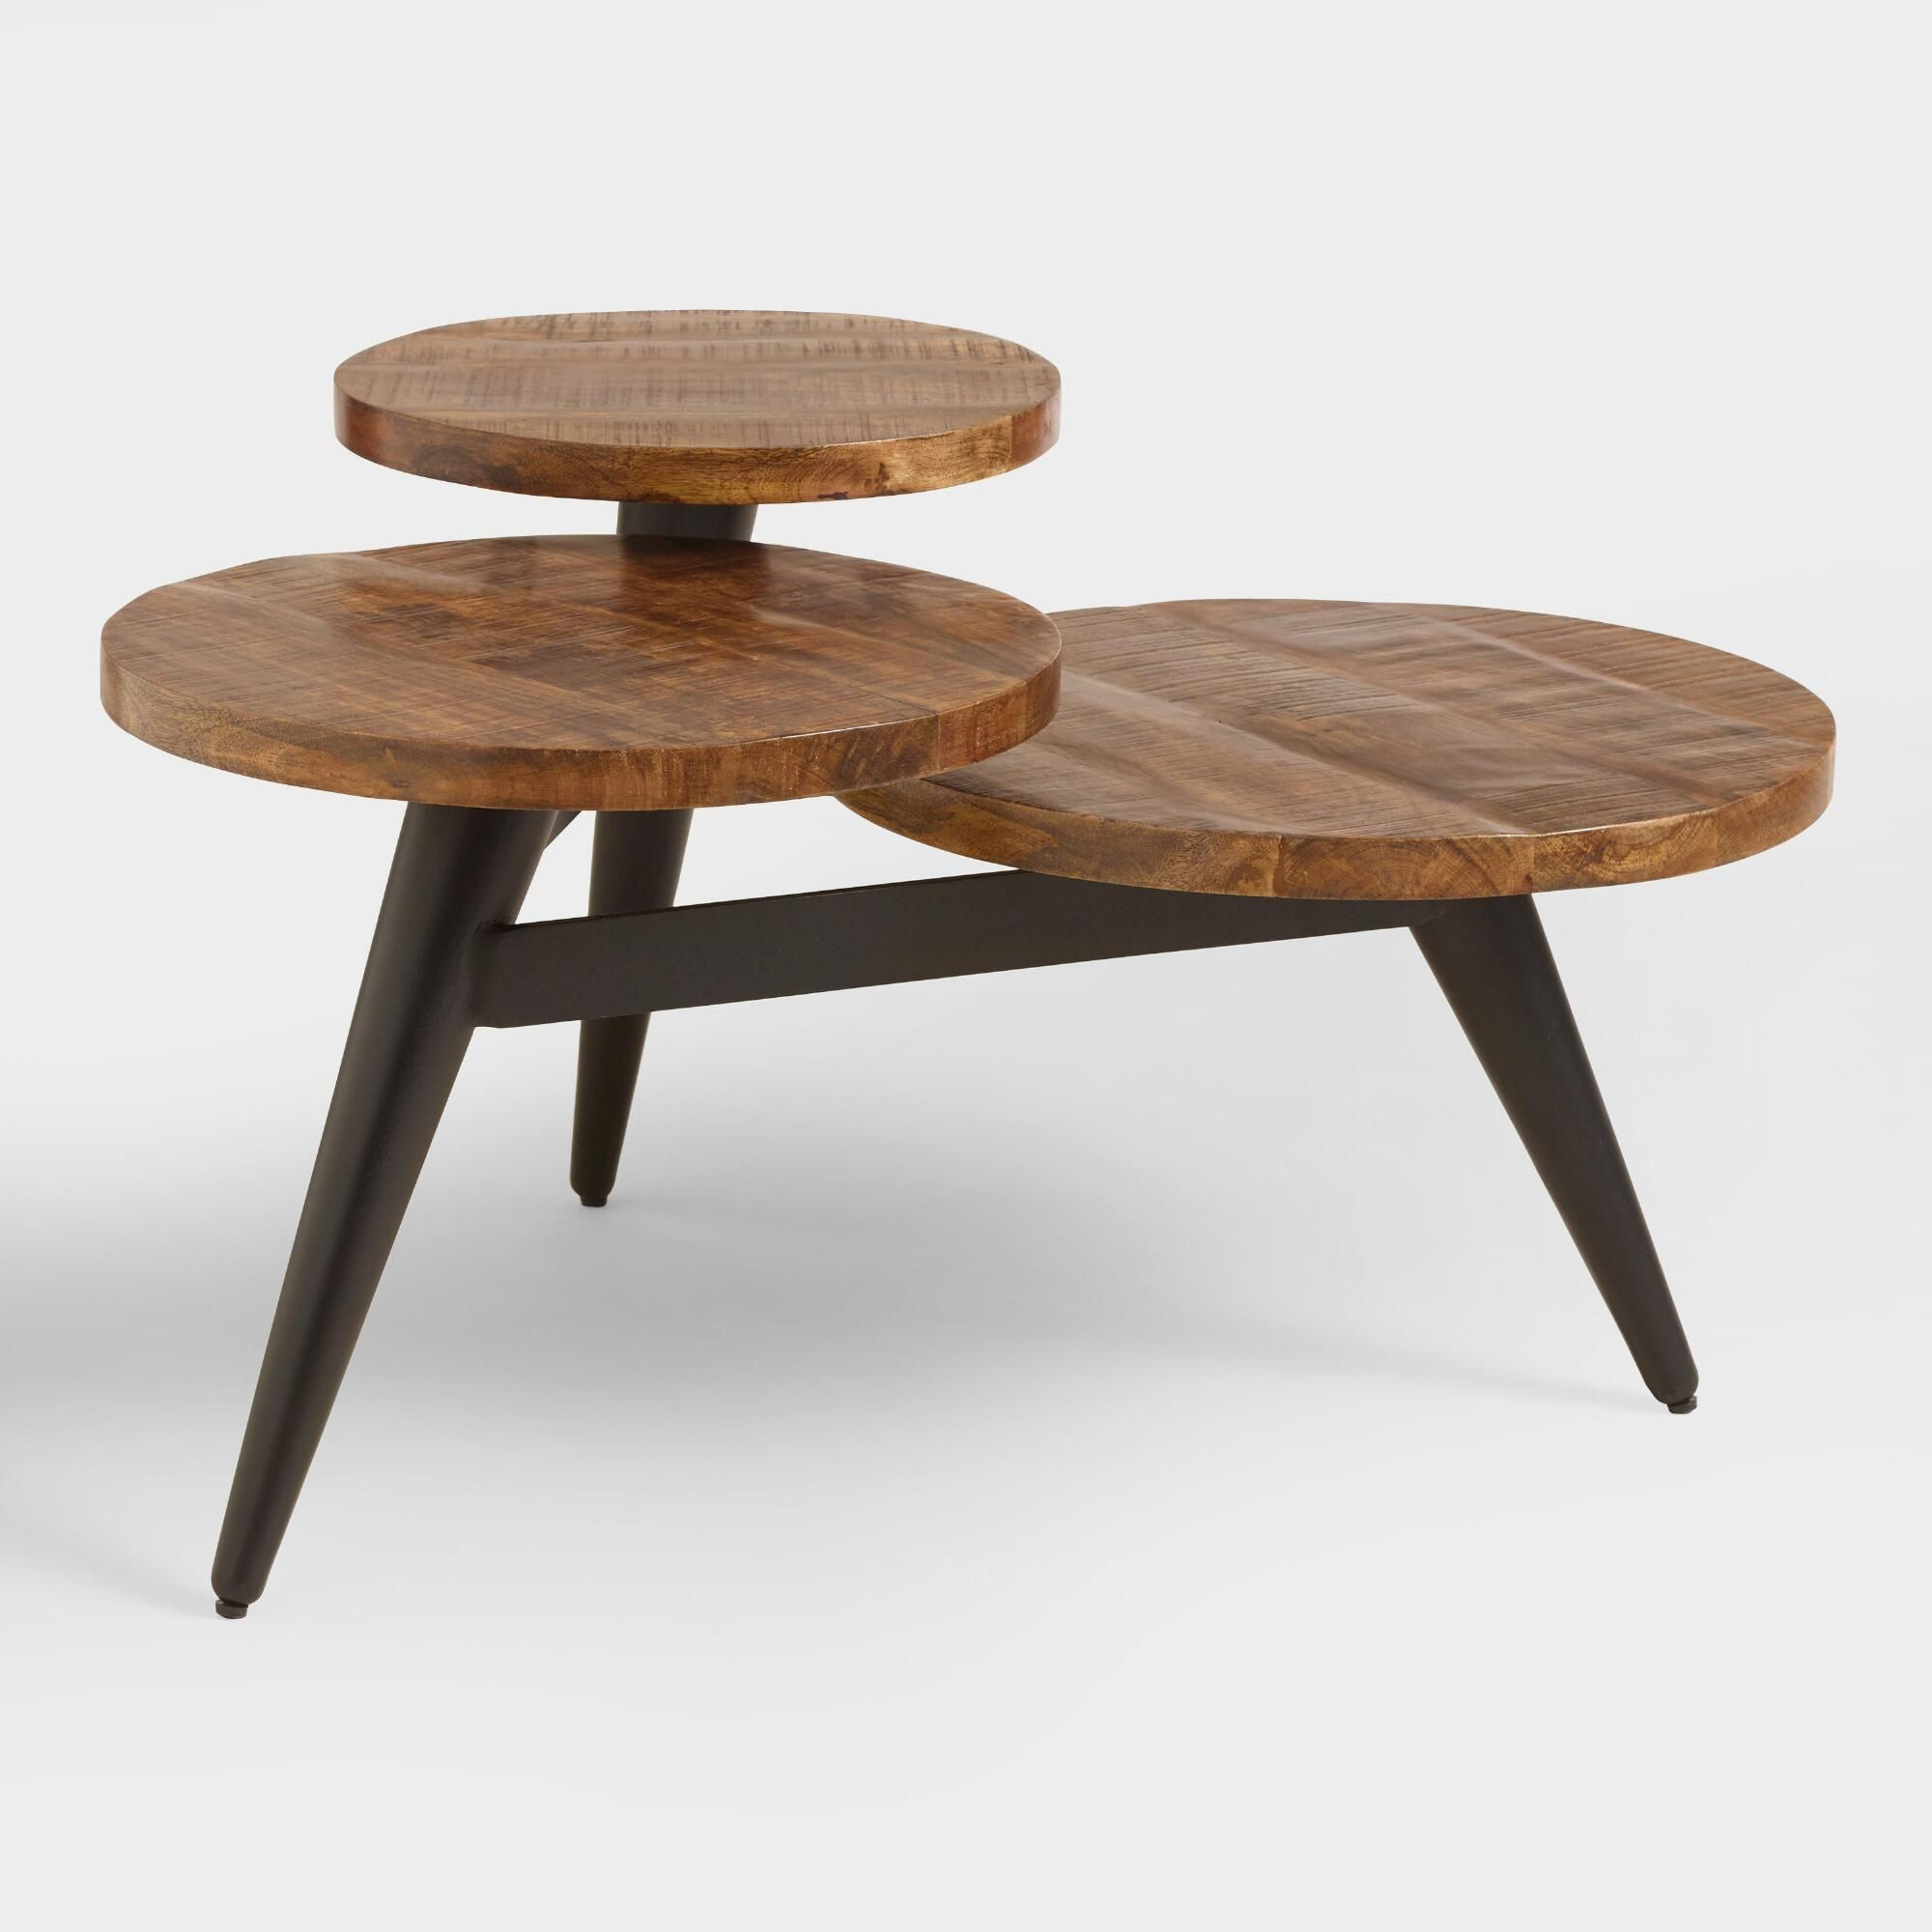 Wood And Metal Multi Level Coffee Table By World Market Wood